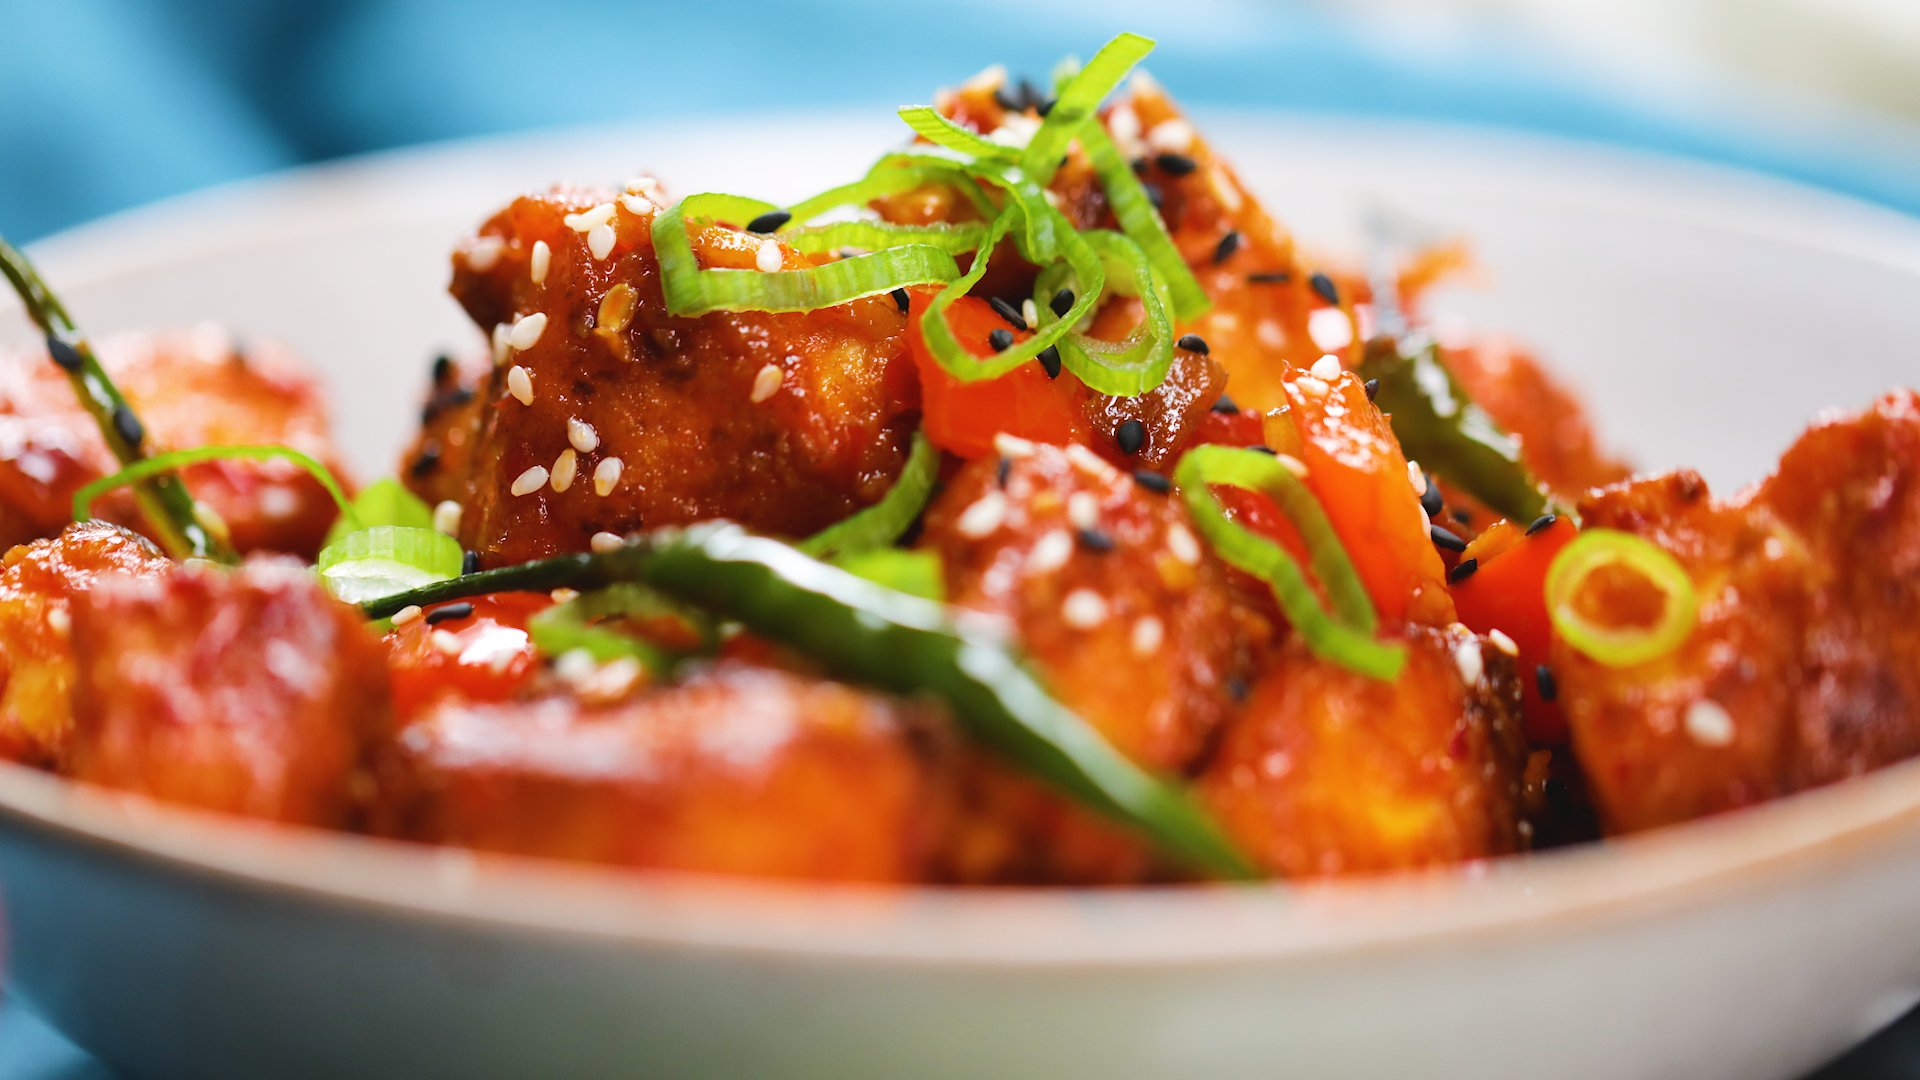 Lockdown: Your Favorite Dishes Will Be Available for Takeaway and Delivery from Nilgiri Spice Edinburgh